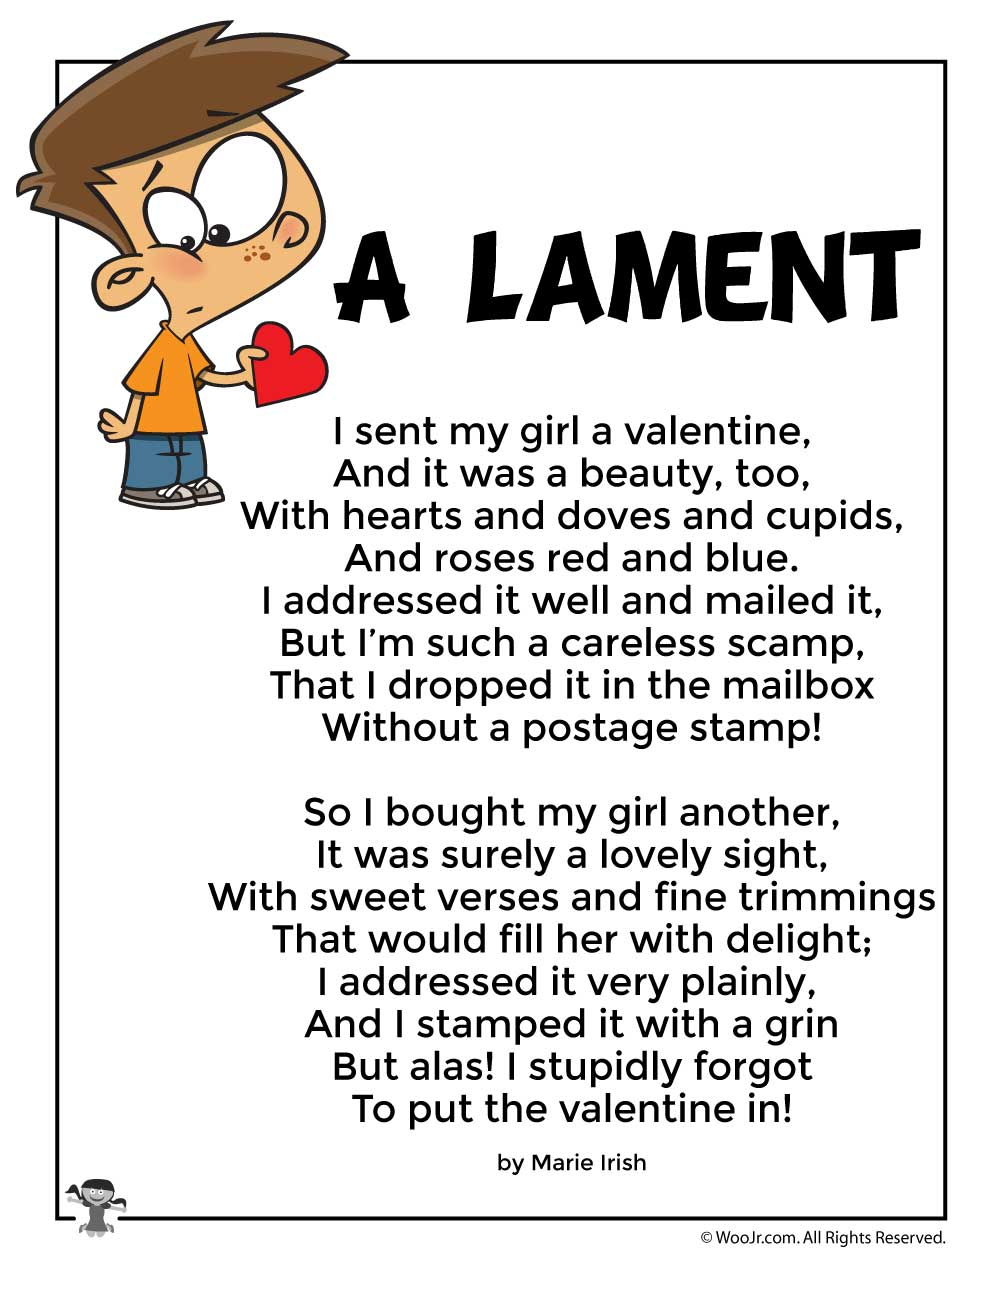 Funny Valentines Day Poems For Coworkers : funny, valentines, poems, coworkers, Lament, Funny, Valentine's, Activities